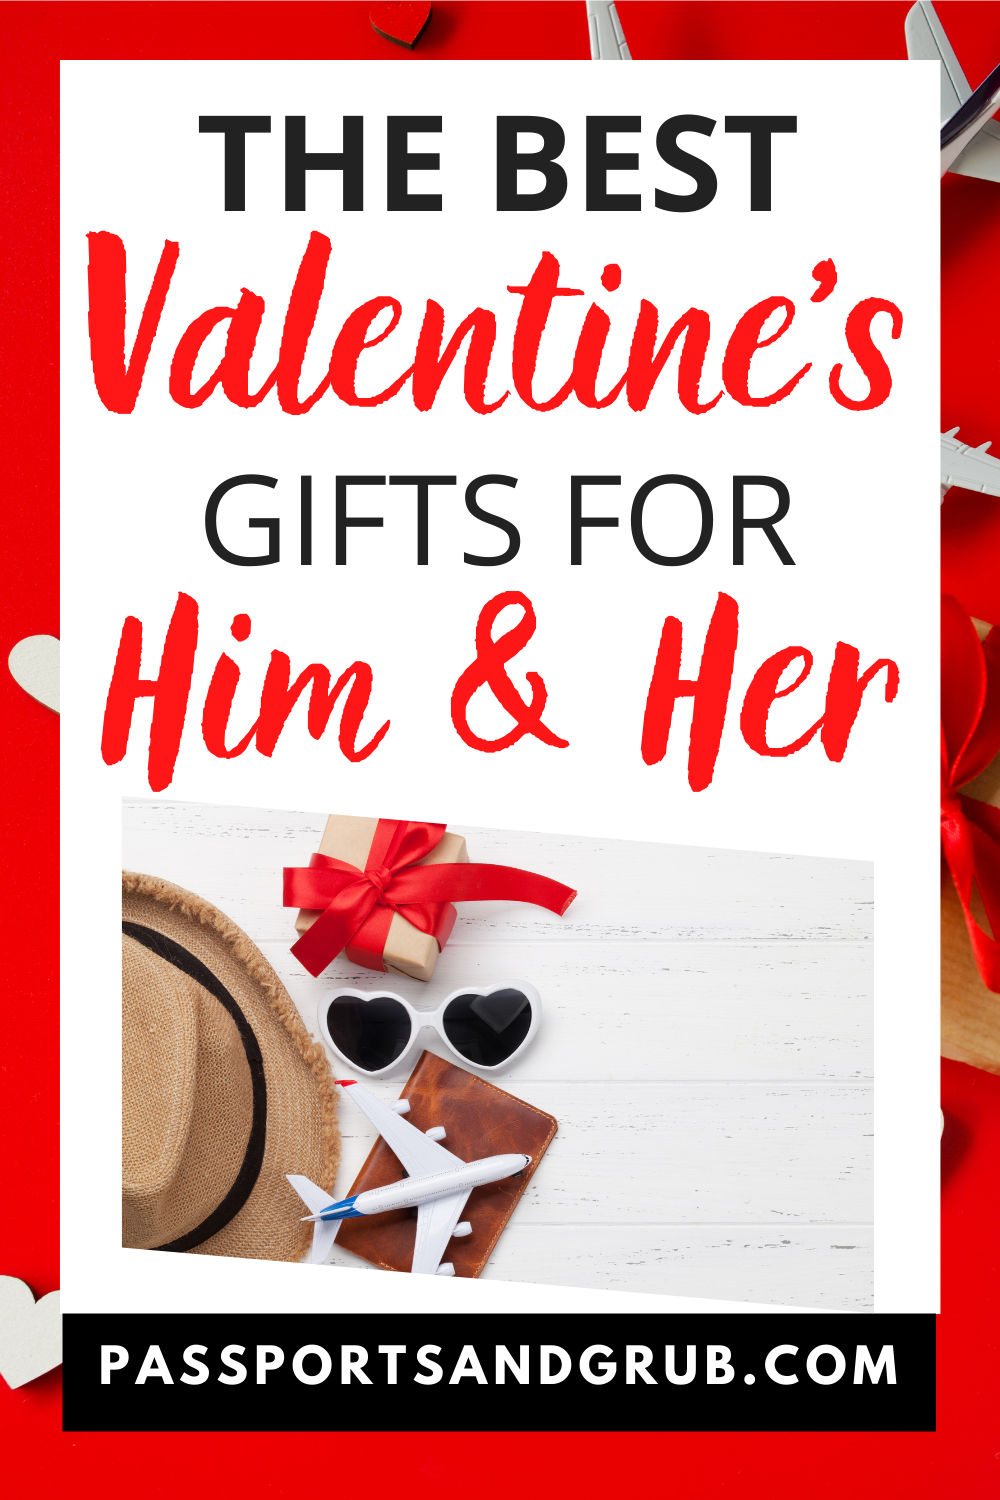 Valentine's Gifts for Hom & Her